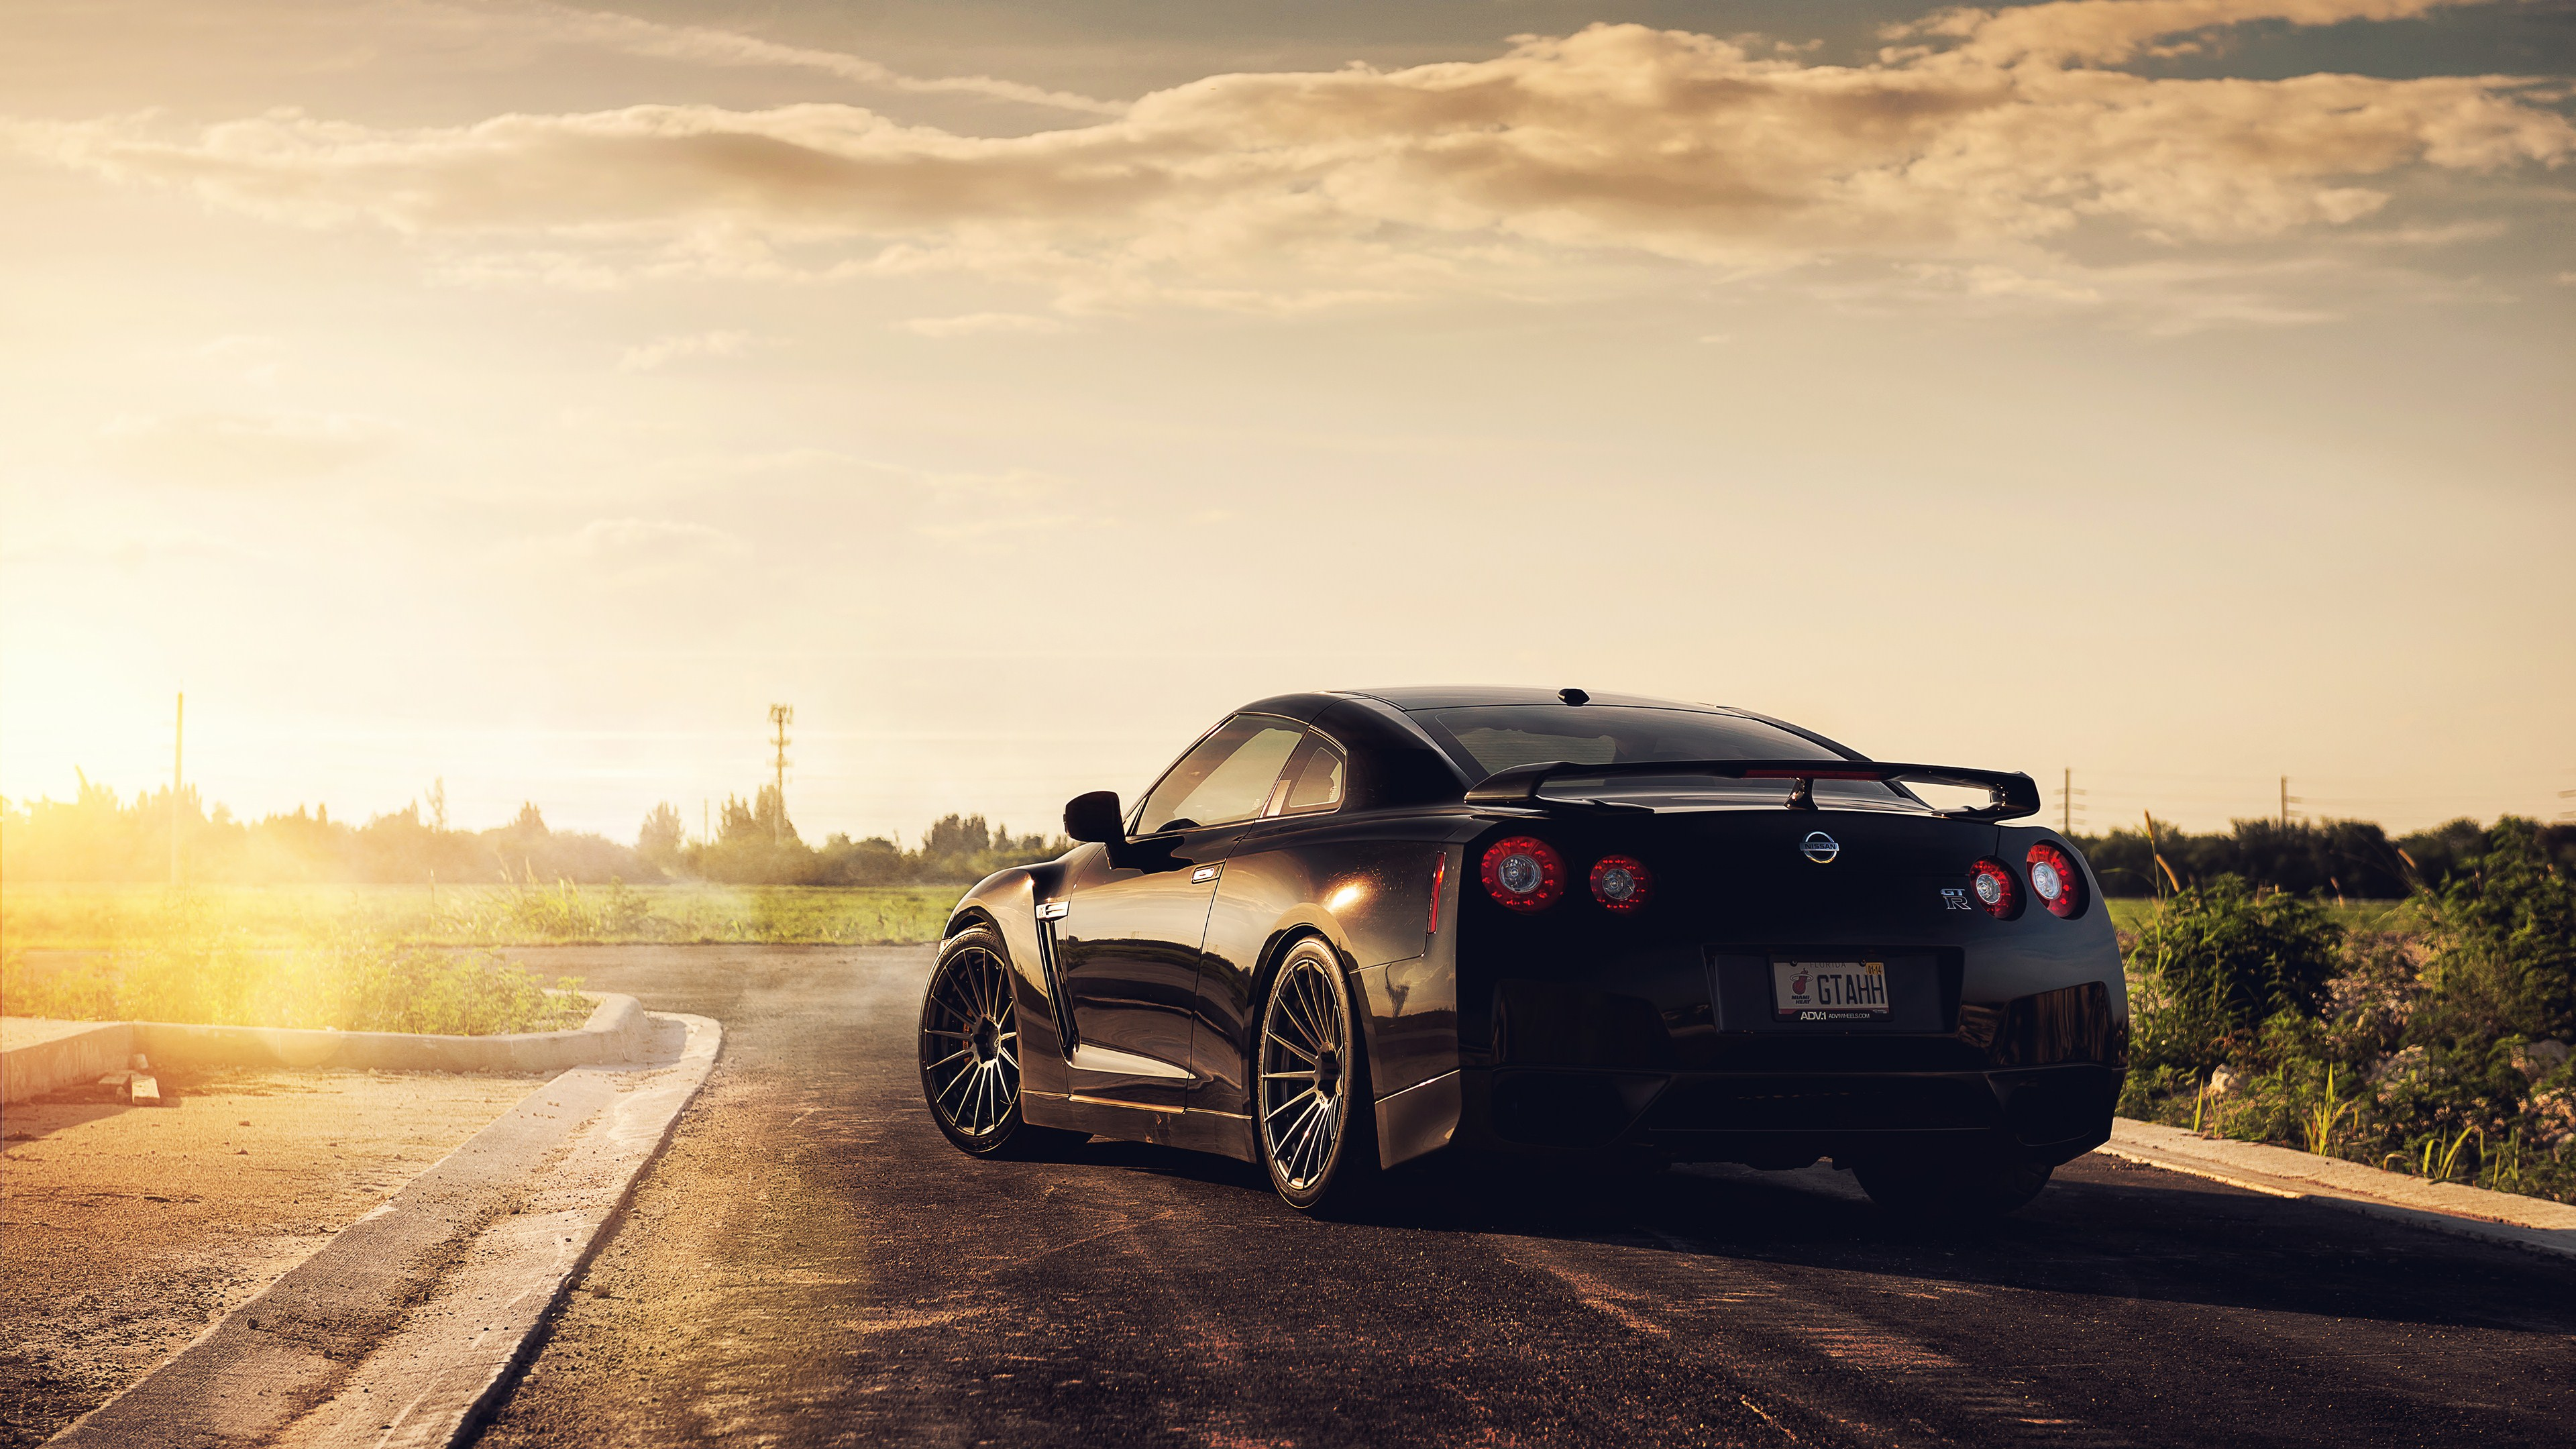 Top 10 Best 4K Ultra HD Cars Wallpapers For Windows 10 ...